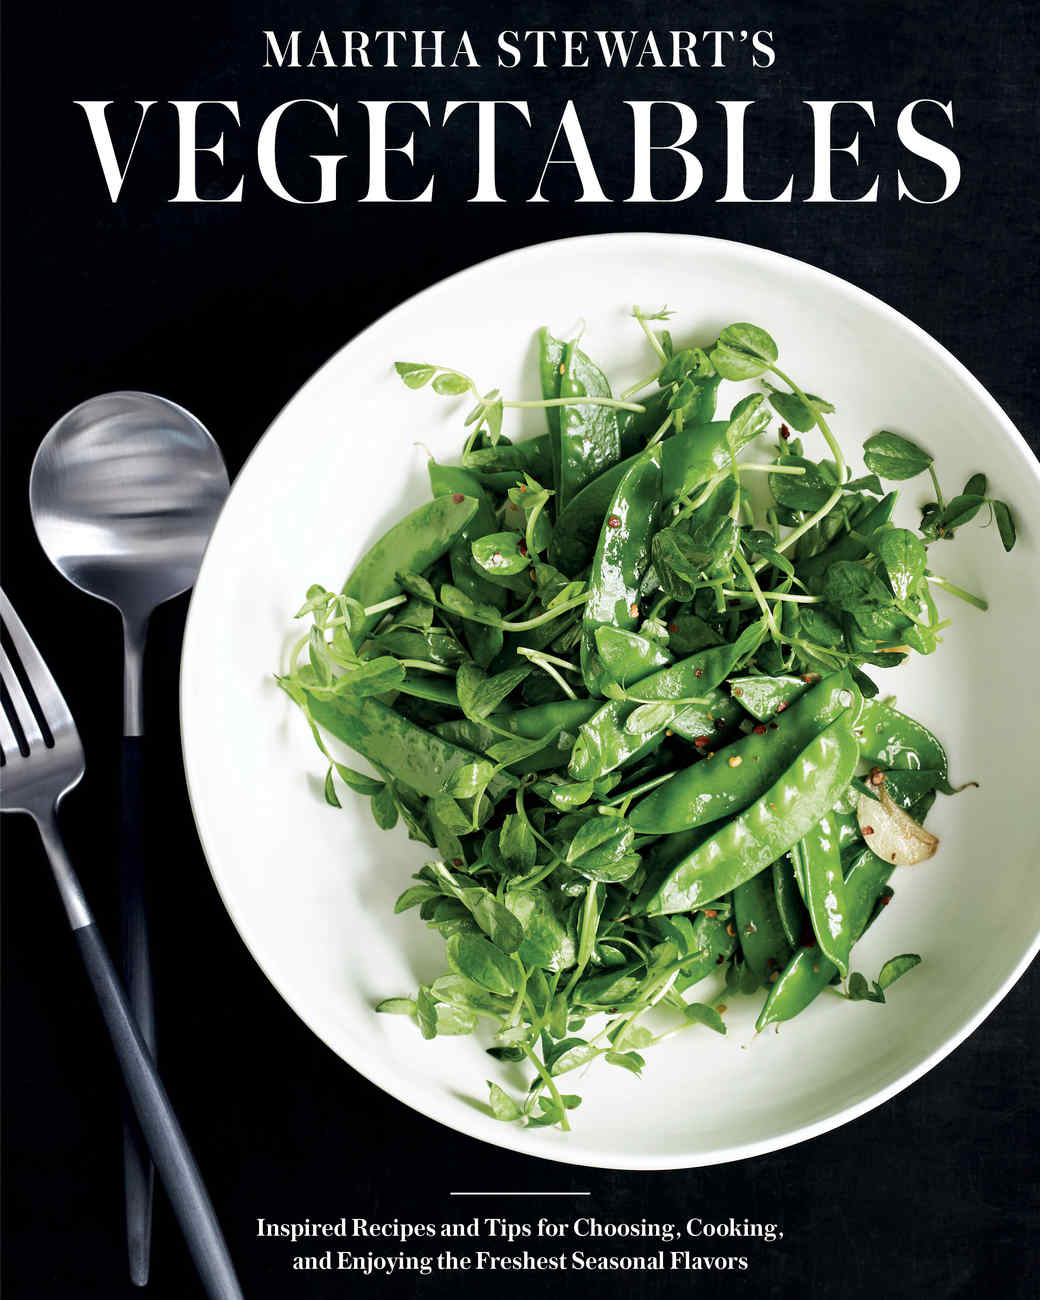 Trying to eat more veggies dont miss the sneak peek of our new trying to eat more veggies dont miss the sneak peek of our new cookbook martha stewarts vegetables martha stewart forumfinder Images